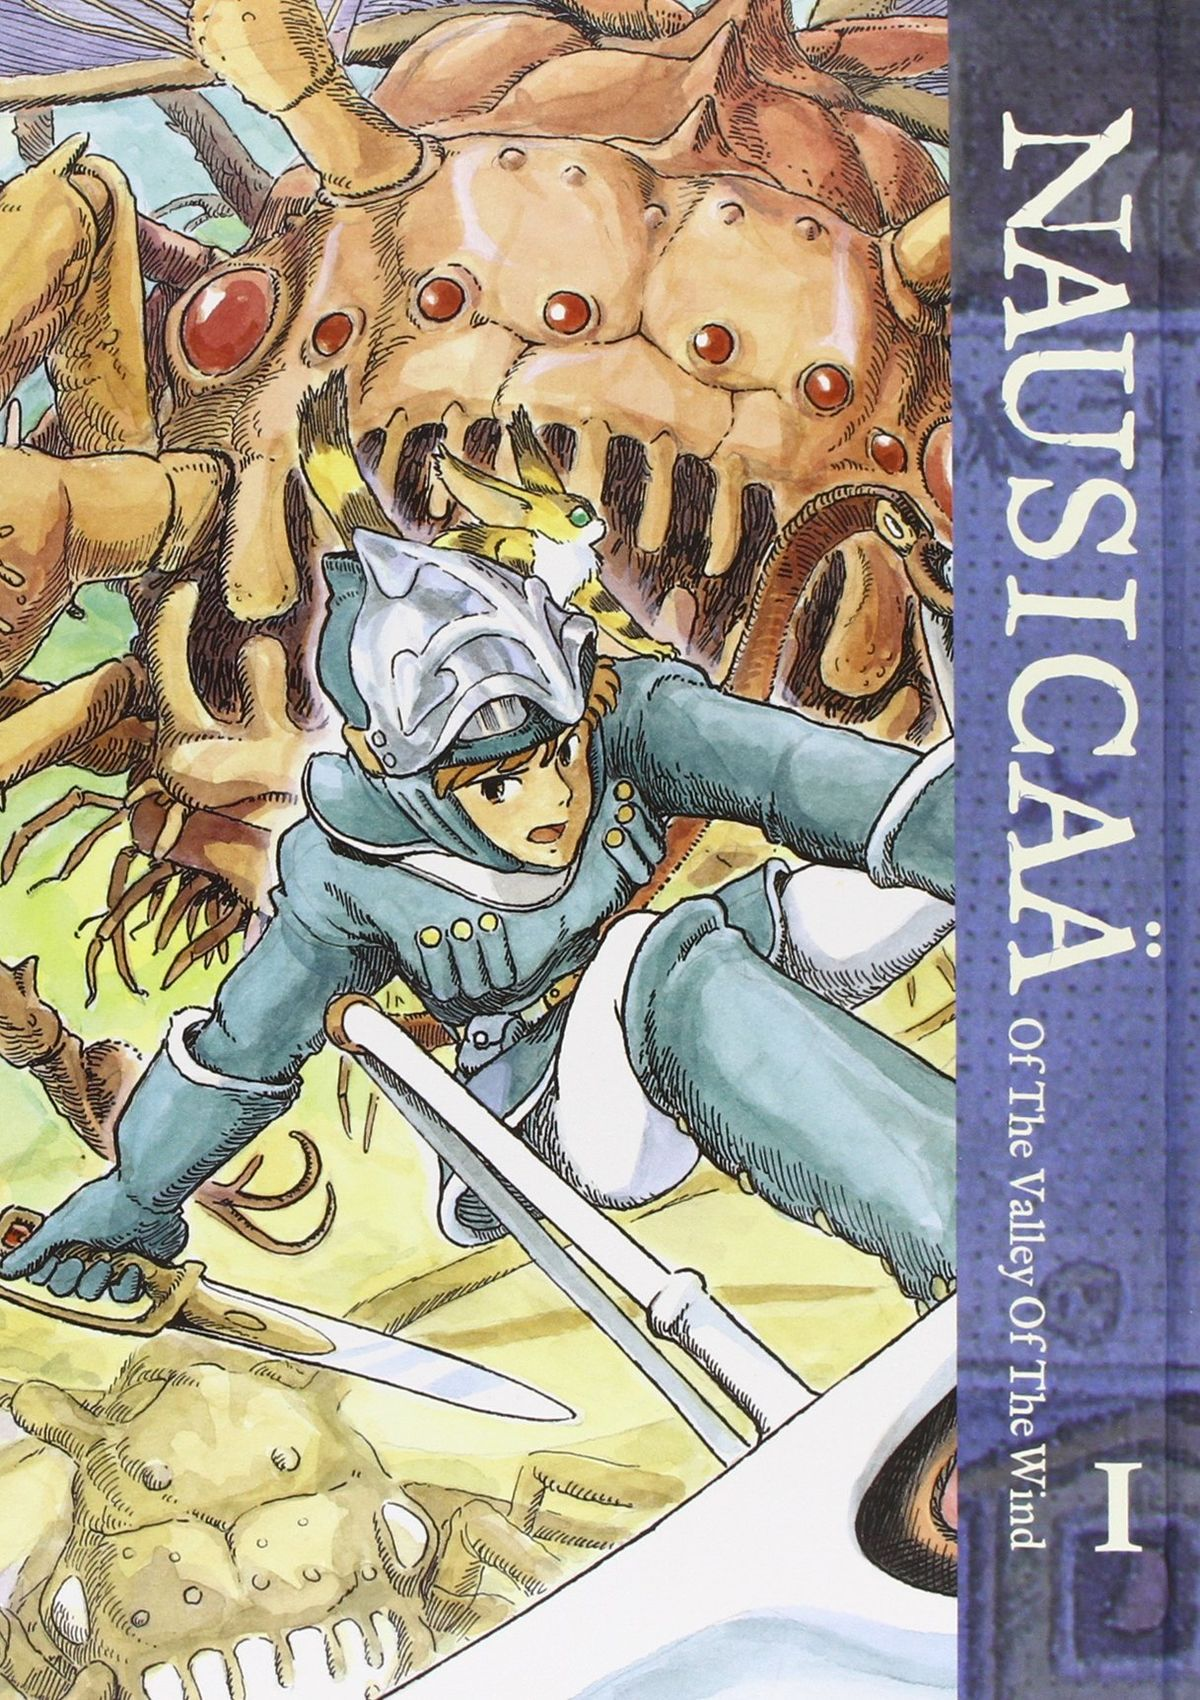 Nausicaä of the Valley of the Wind reminds us that everything changes, and life goes on